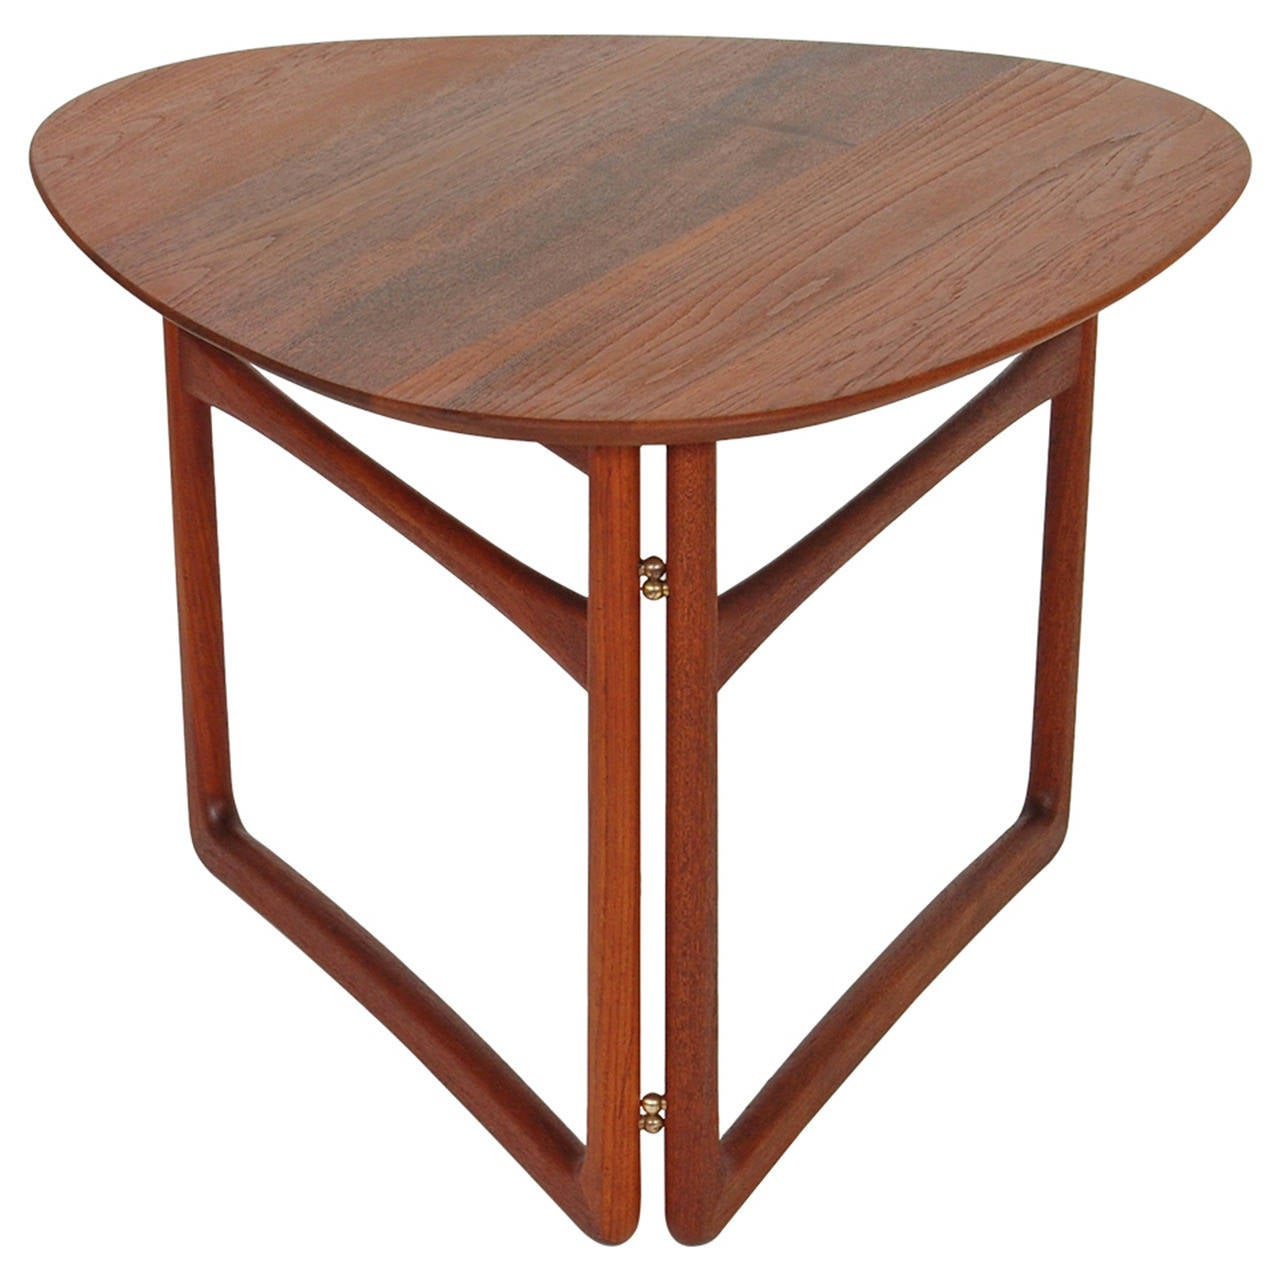 peter hvidt folding side table at 1stdibs. Black Bedroom Furniture Sets. Home Design Ideas